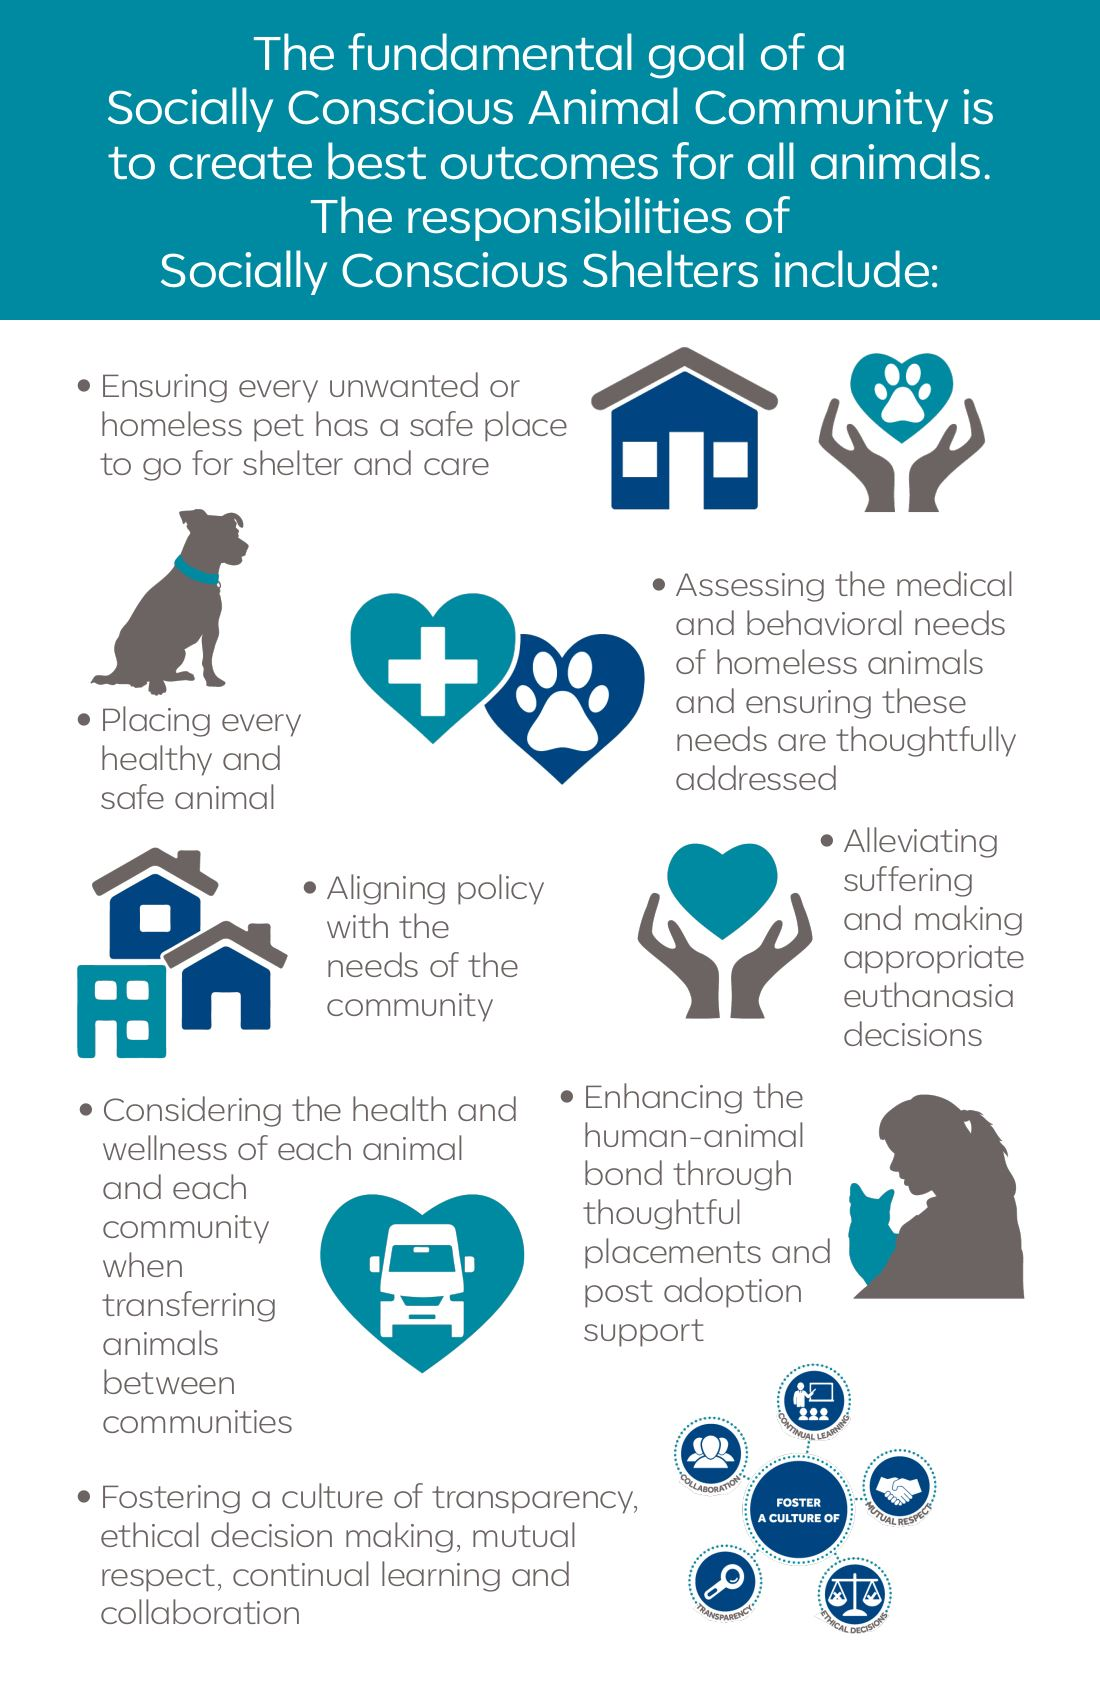 Responsibilities for socially conscious animal shelters